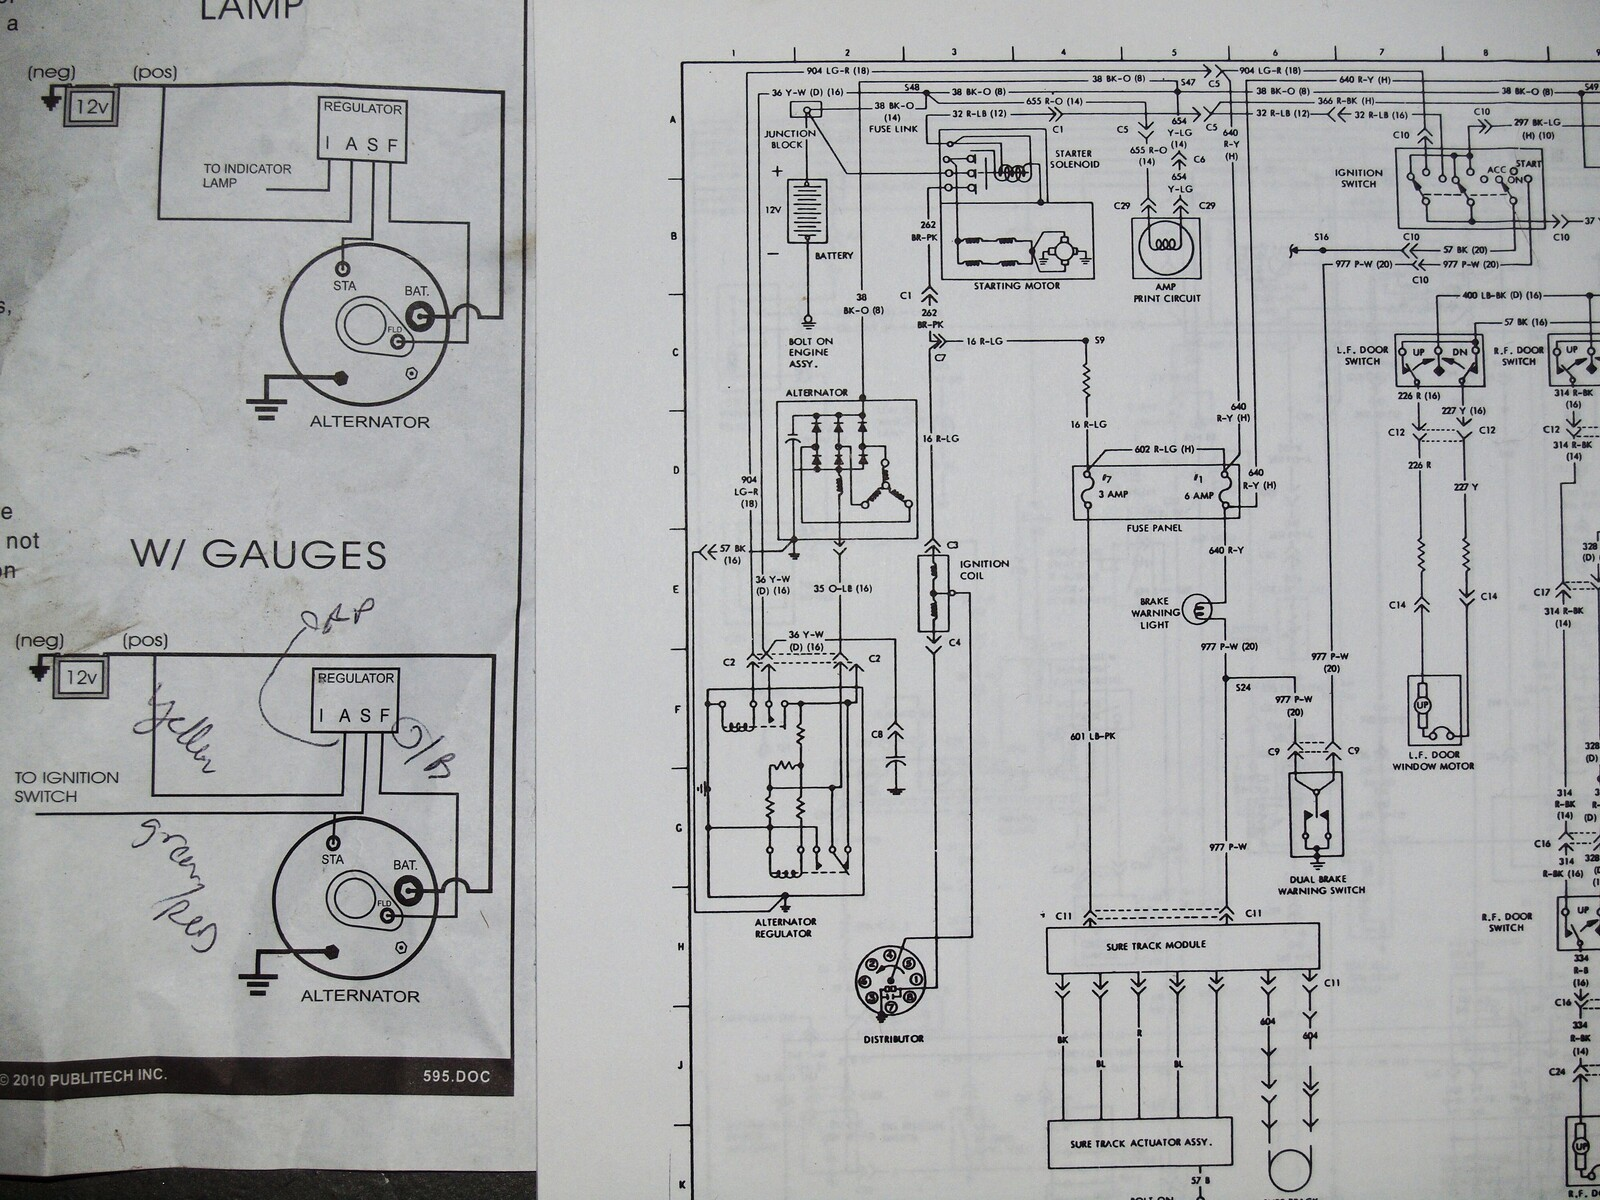 no charging (with amp gauge) 460 ford forum Mercury Capri Wiring Diagram i appreciate it